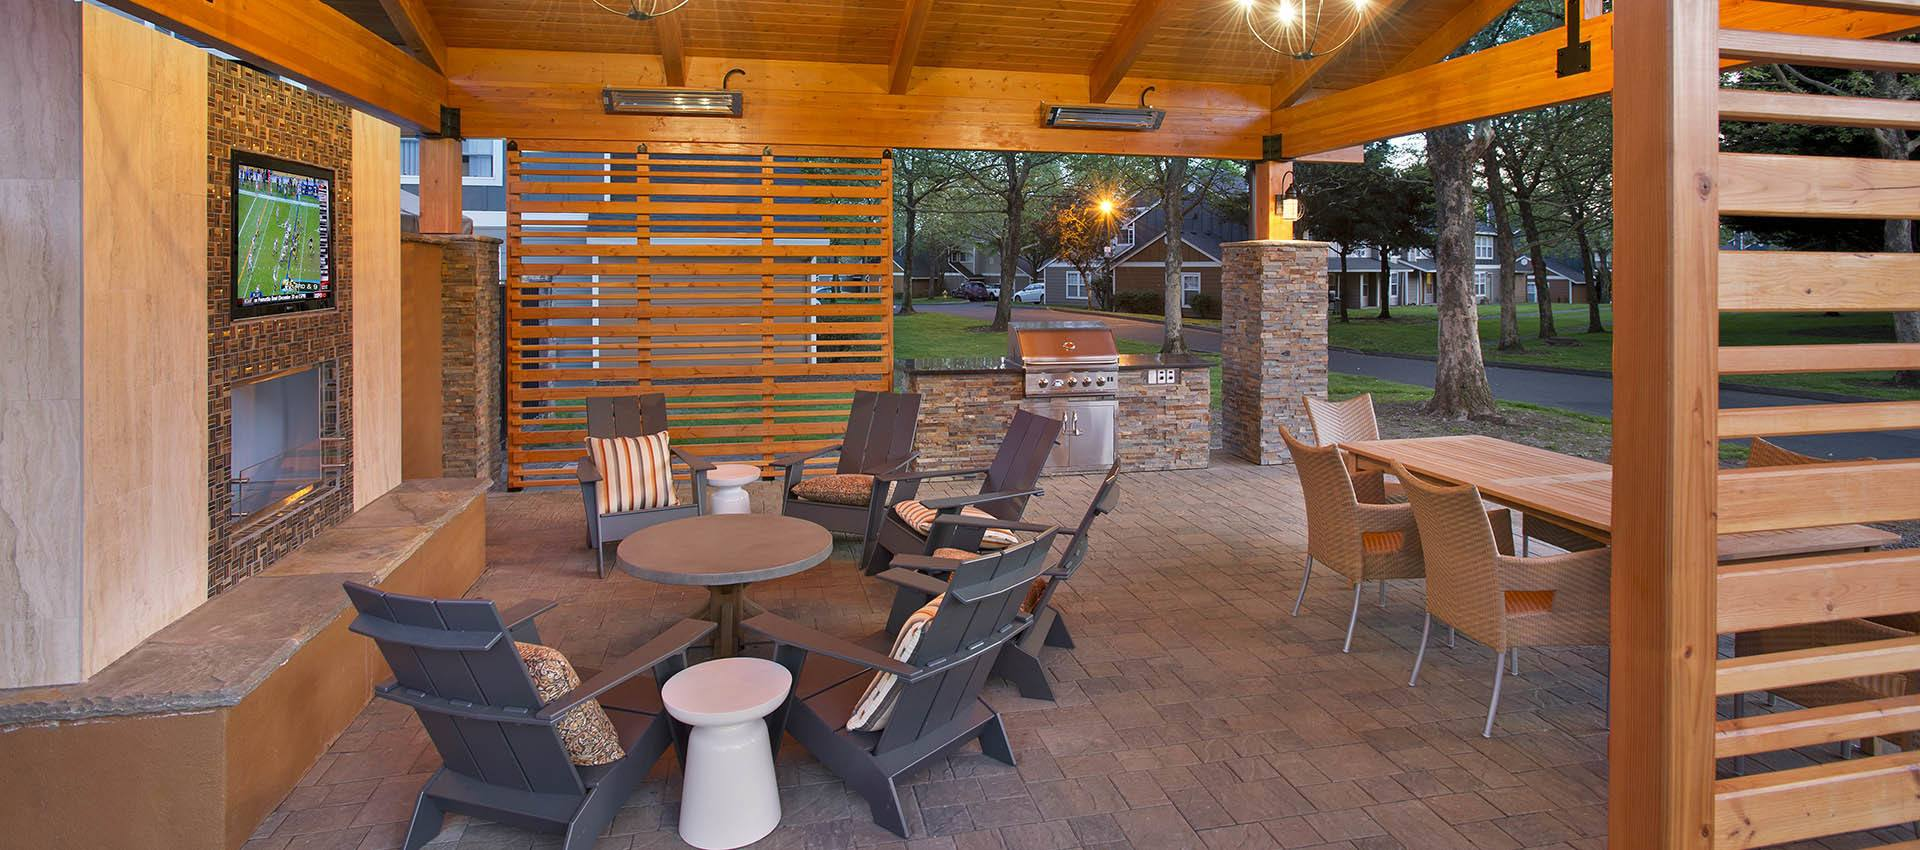 Outdoor seating at Slate Ridge at Fisher's Landing Apartment Homes in Vancouver, WA